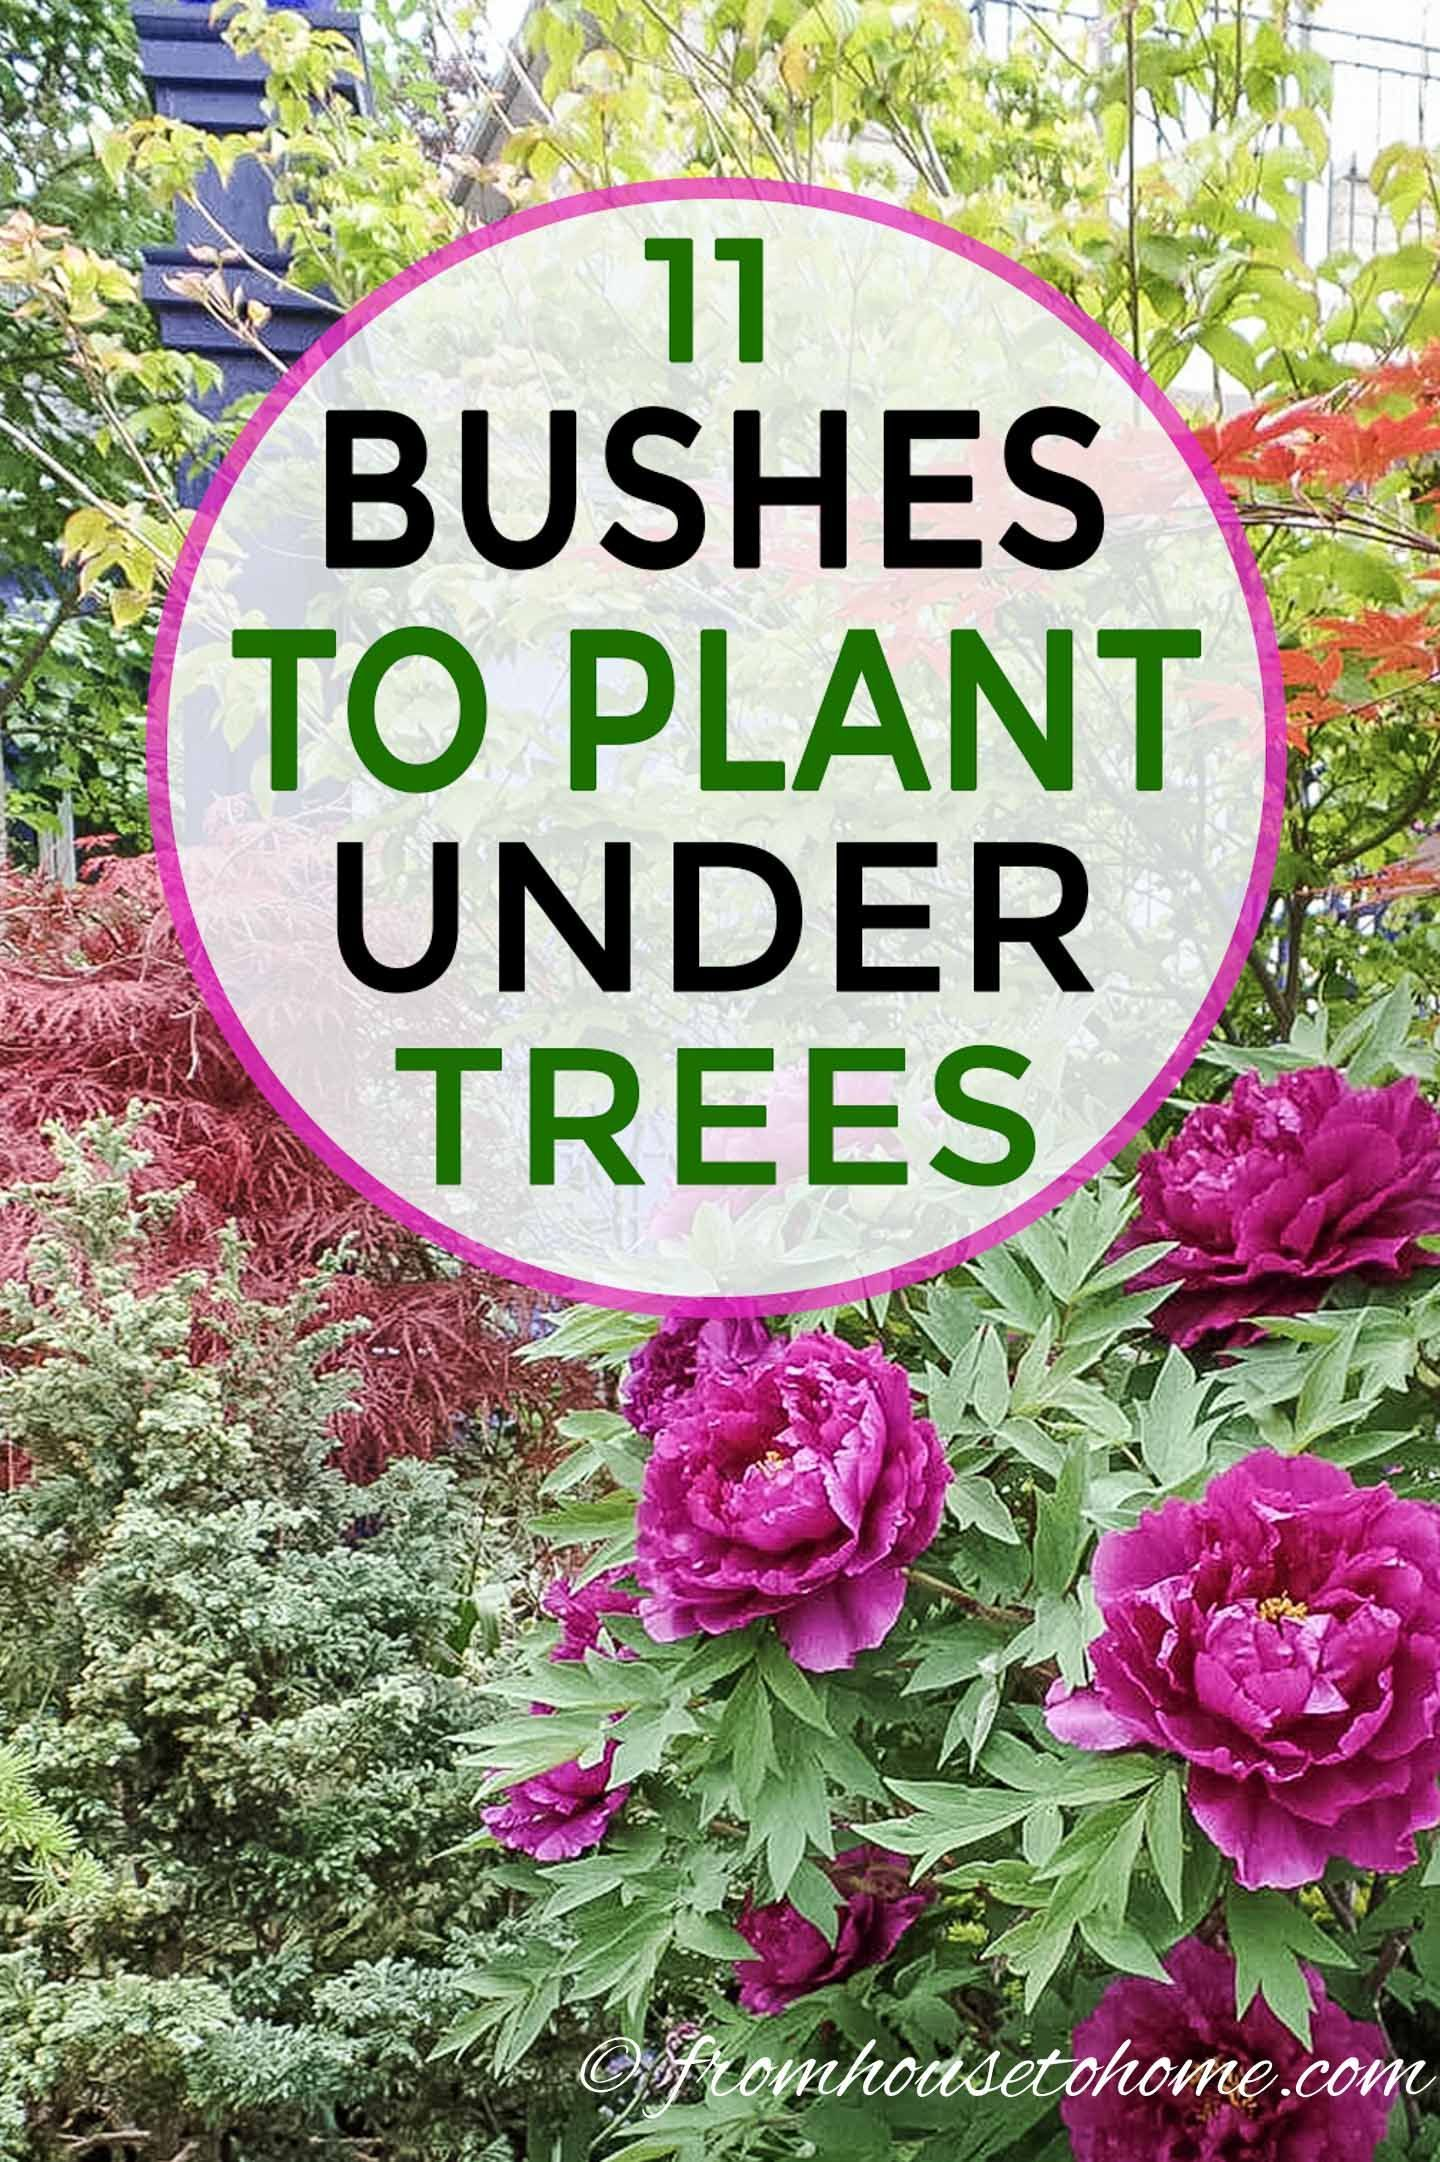 Shade Loving Shrubs The Best Bushes To Plant Under Trees Gardening From House To Home Plants Under Trees Shade Loving Shrubs Shade Garden Plants